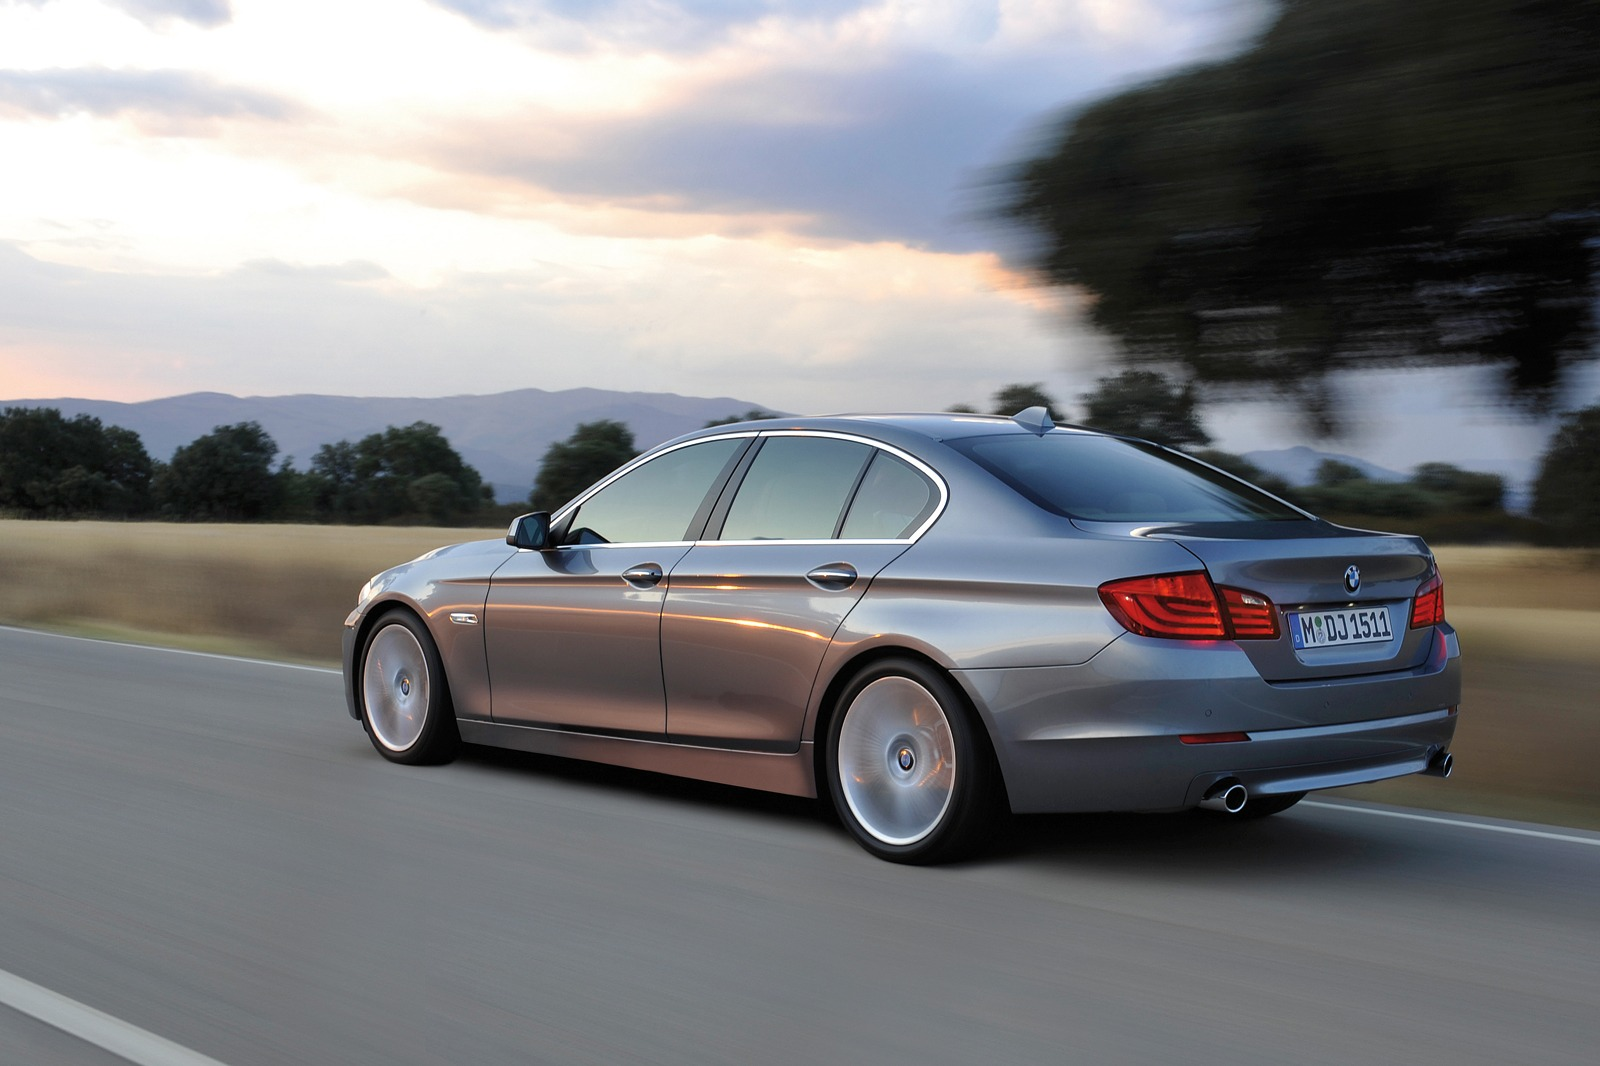 Are we looking at a possible $49,999.99 base price for the 2011 BMW 535i?